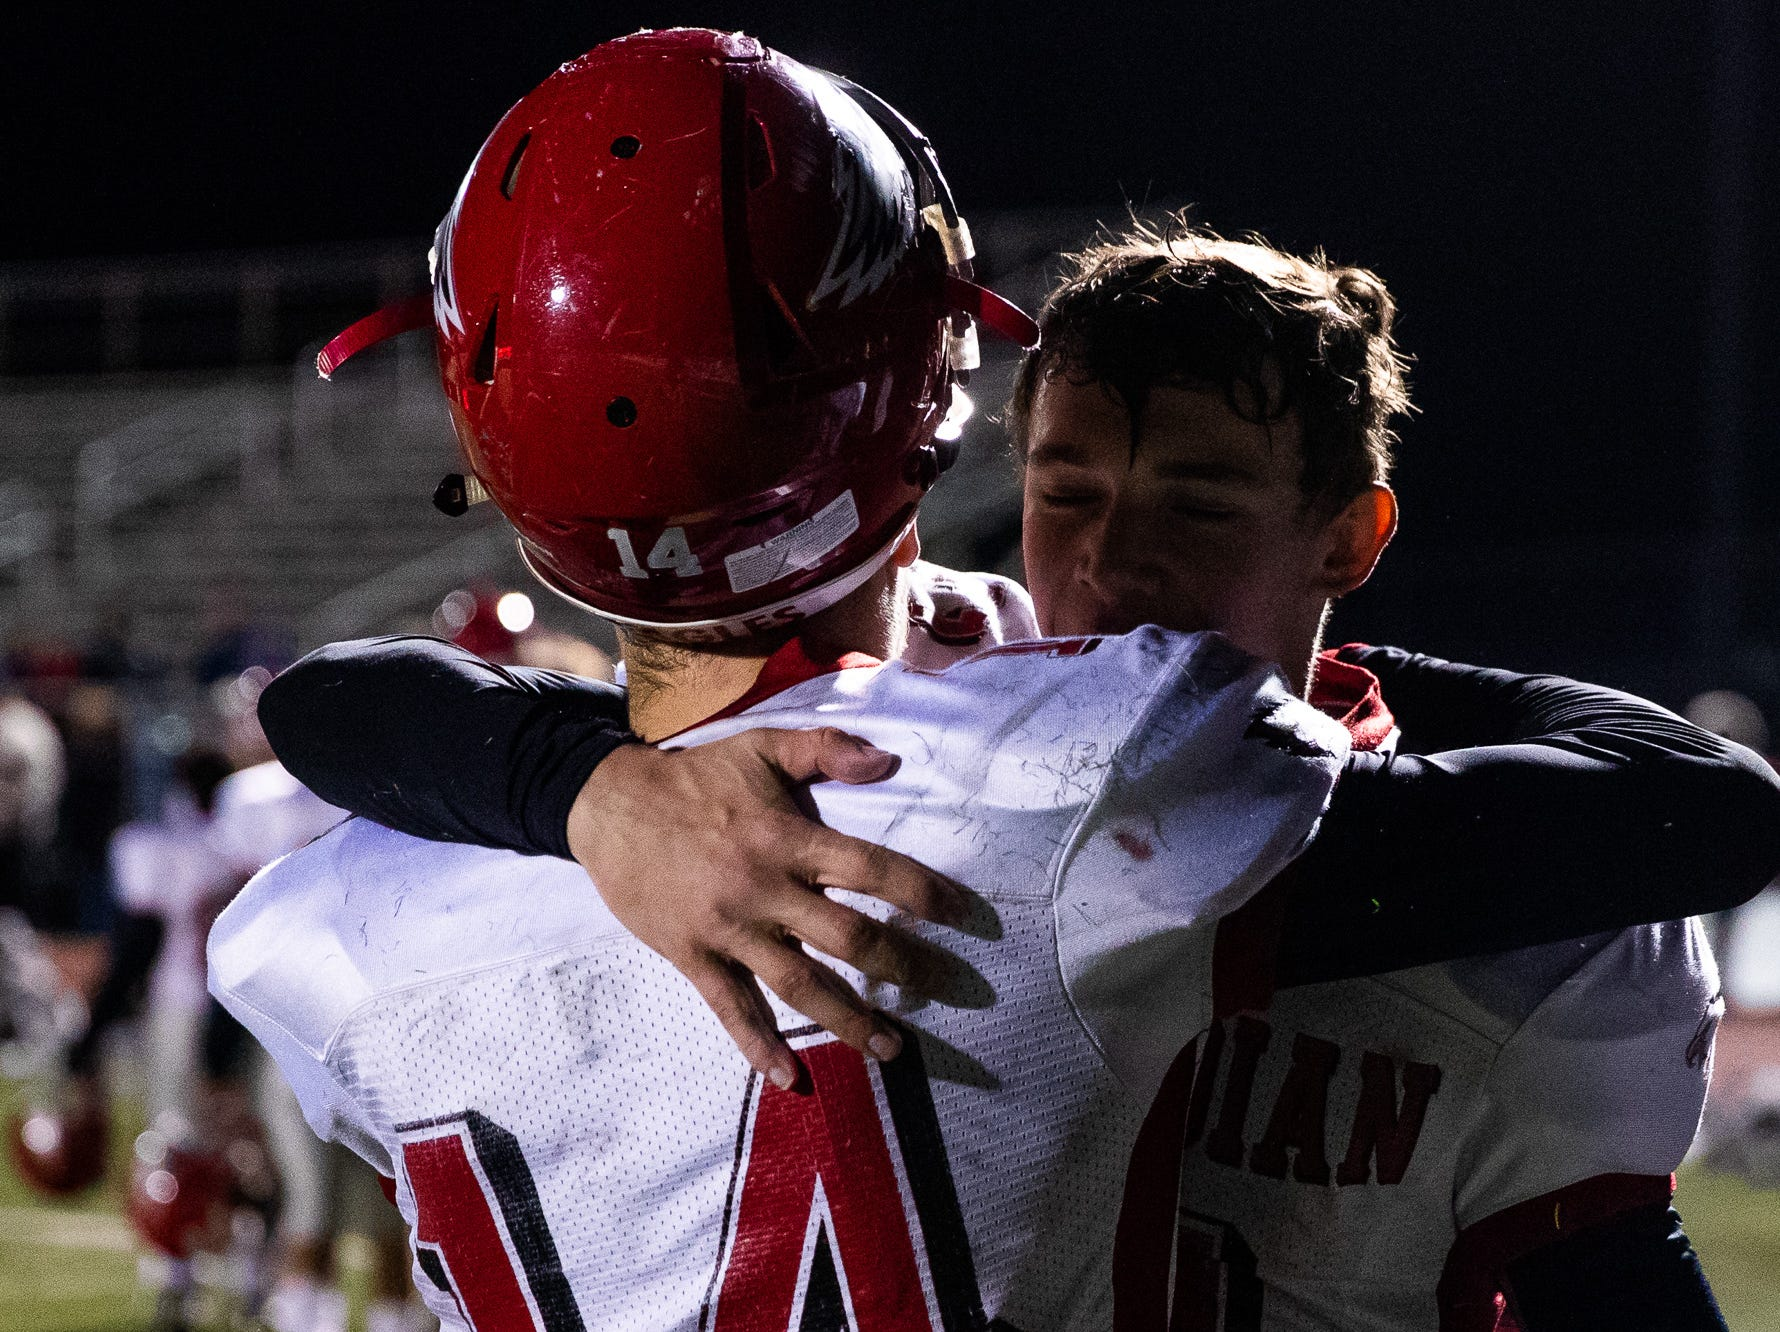 Members of the Bermudian Springs Eagles embrace as they walk off the field after losing the District 3 Class 3A championship game against Middletown, Saturday, Nov. 17, 2018, at Cedar Crest High School. The Middletown Raiders defeated the Bermudian Springs Eagles 41-20 to win the title.